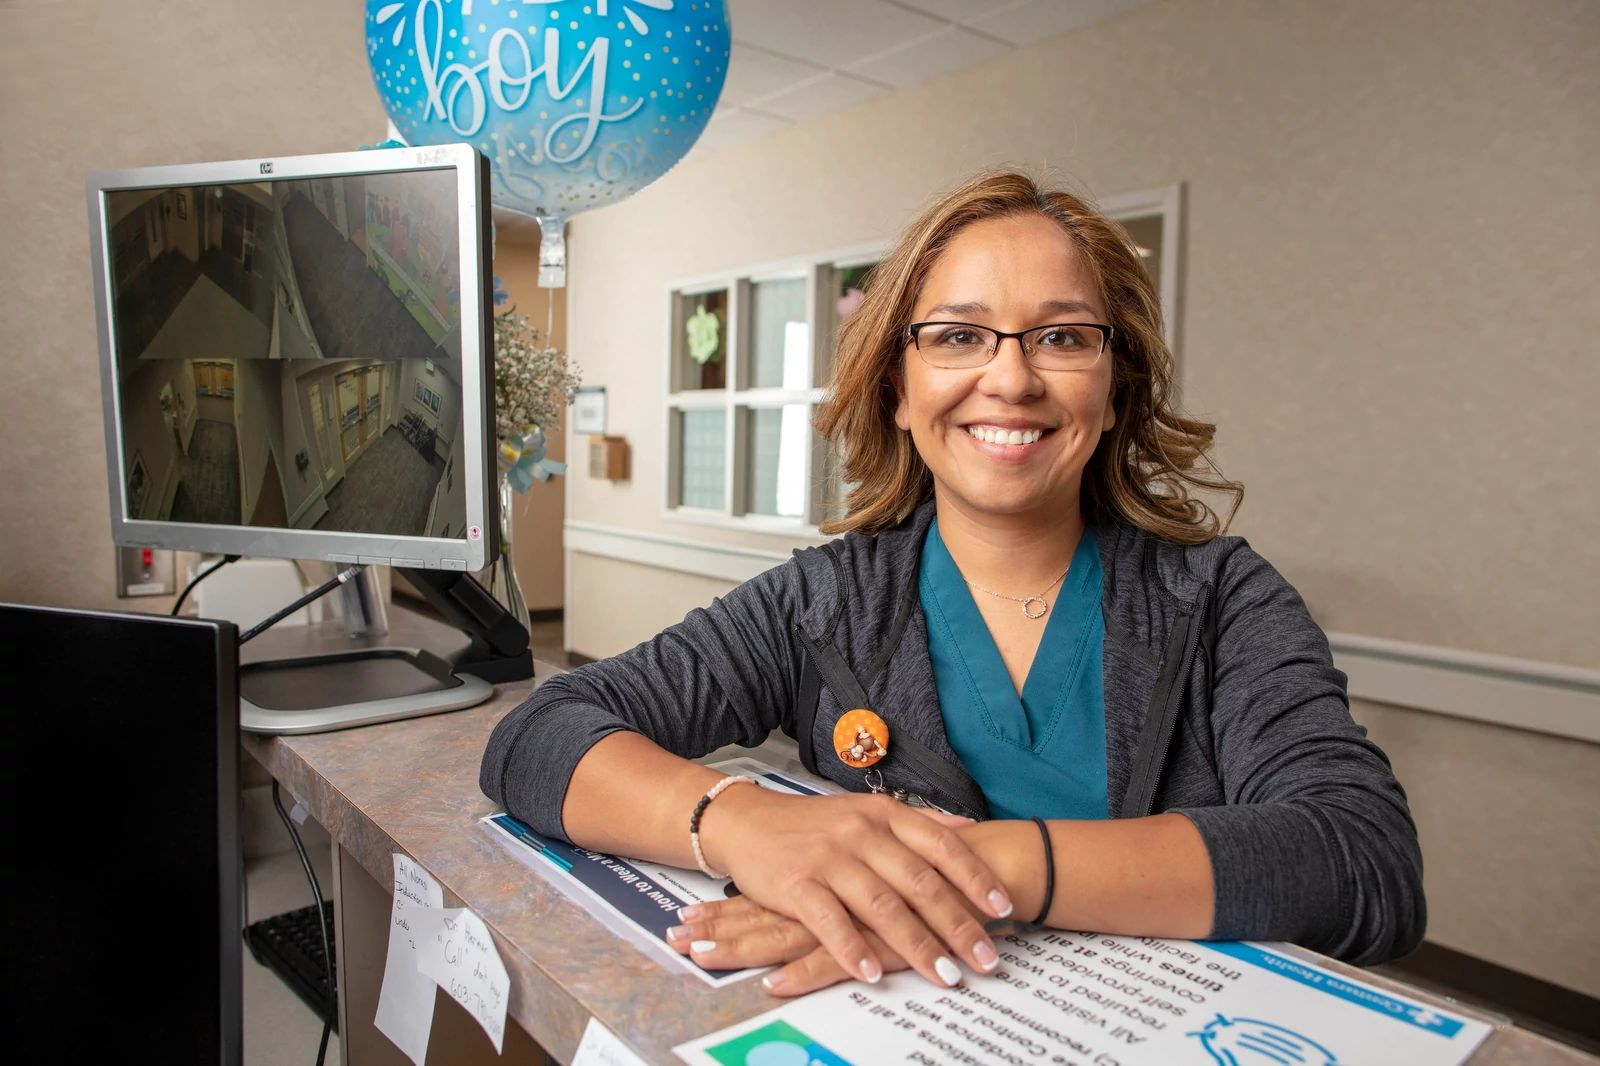 Manager of Clinical Nursing, Veronica Flores, shares a smile in the birth center at St. Catherine Hospital, Garden City, KS.